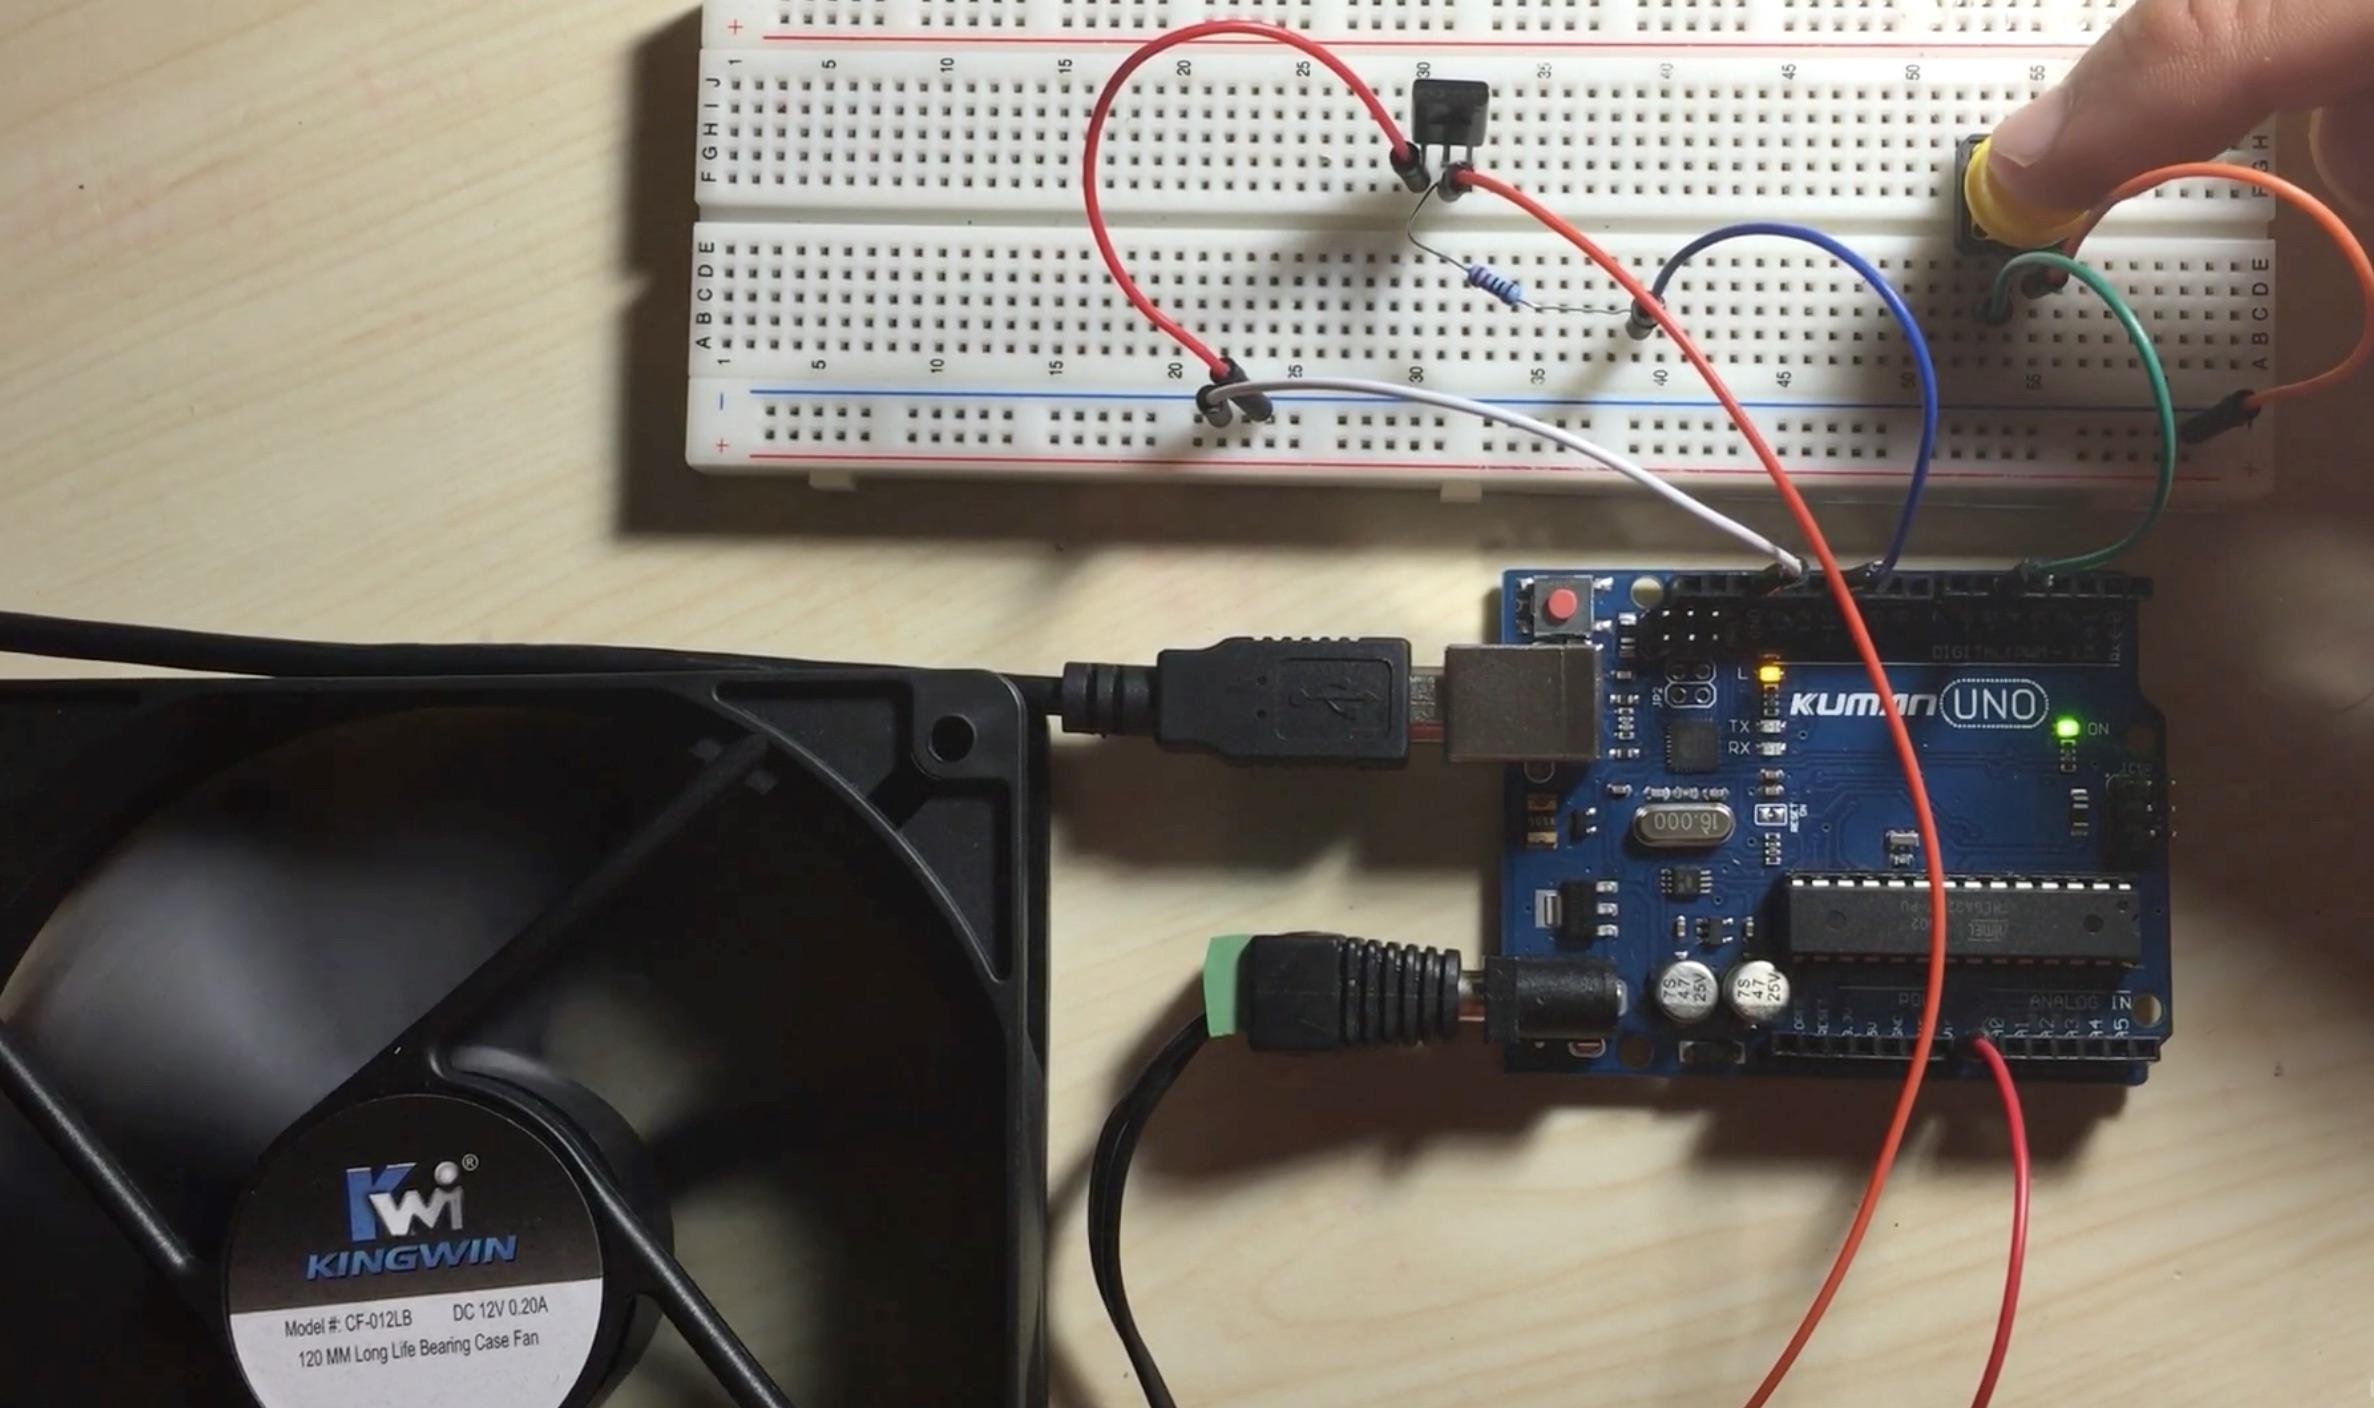 Arduino Bootcamp Projects Controlling A Cpu Fan With Button Breadboard Clone In This Project We Will Build On Our Previous Part 1 And Learn How To Use The Control